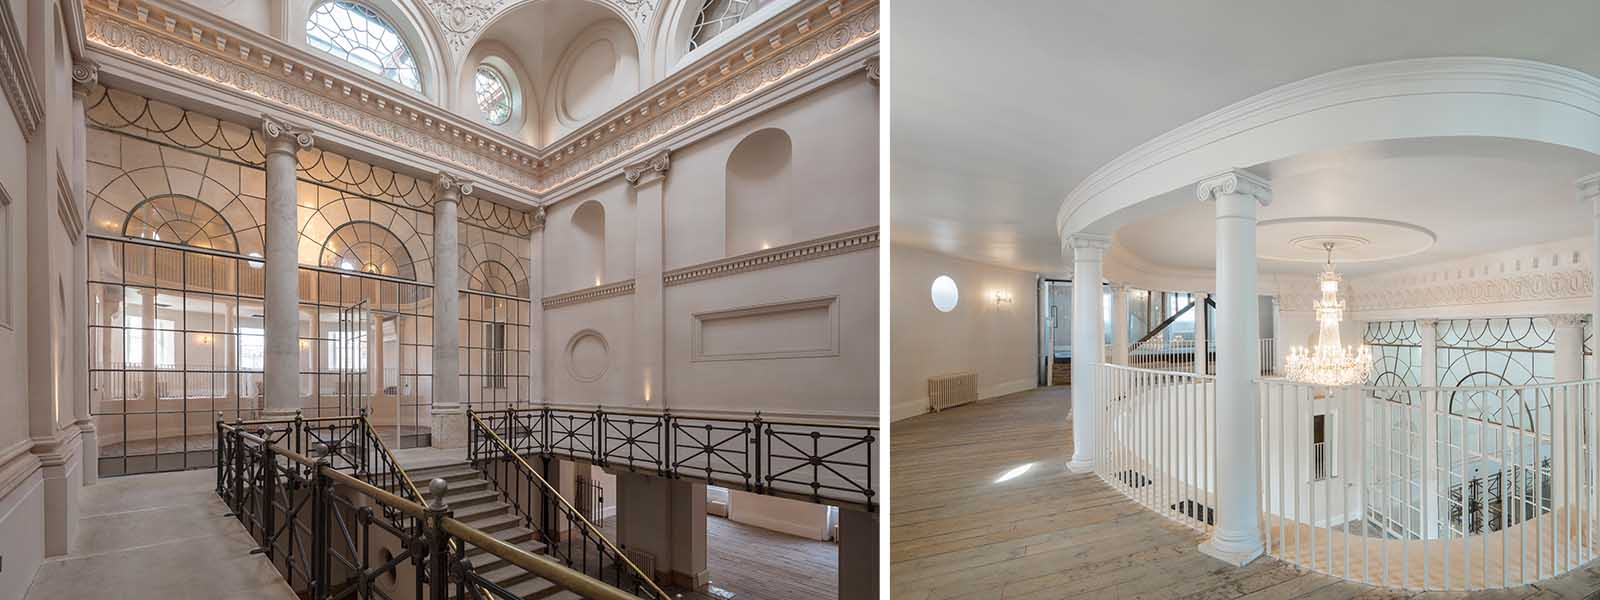 feilden mawson  architecture design  projects  old sessions house